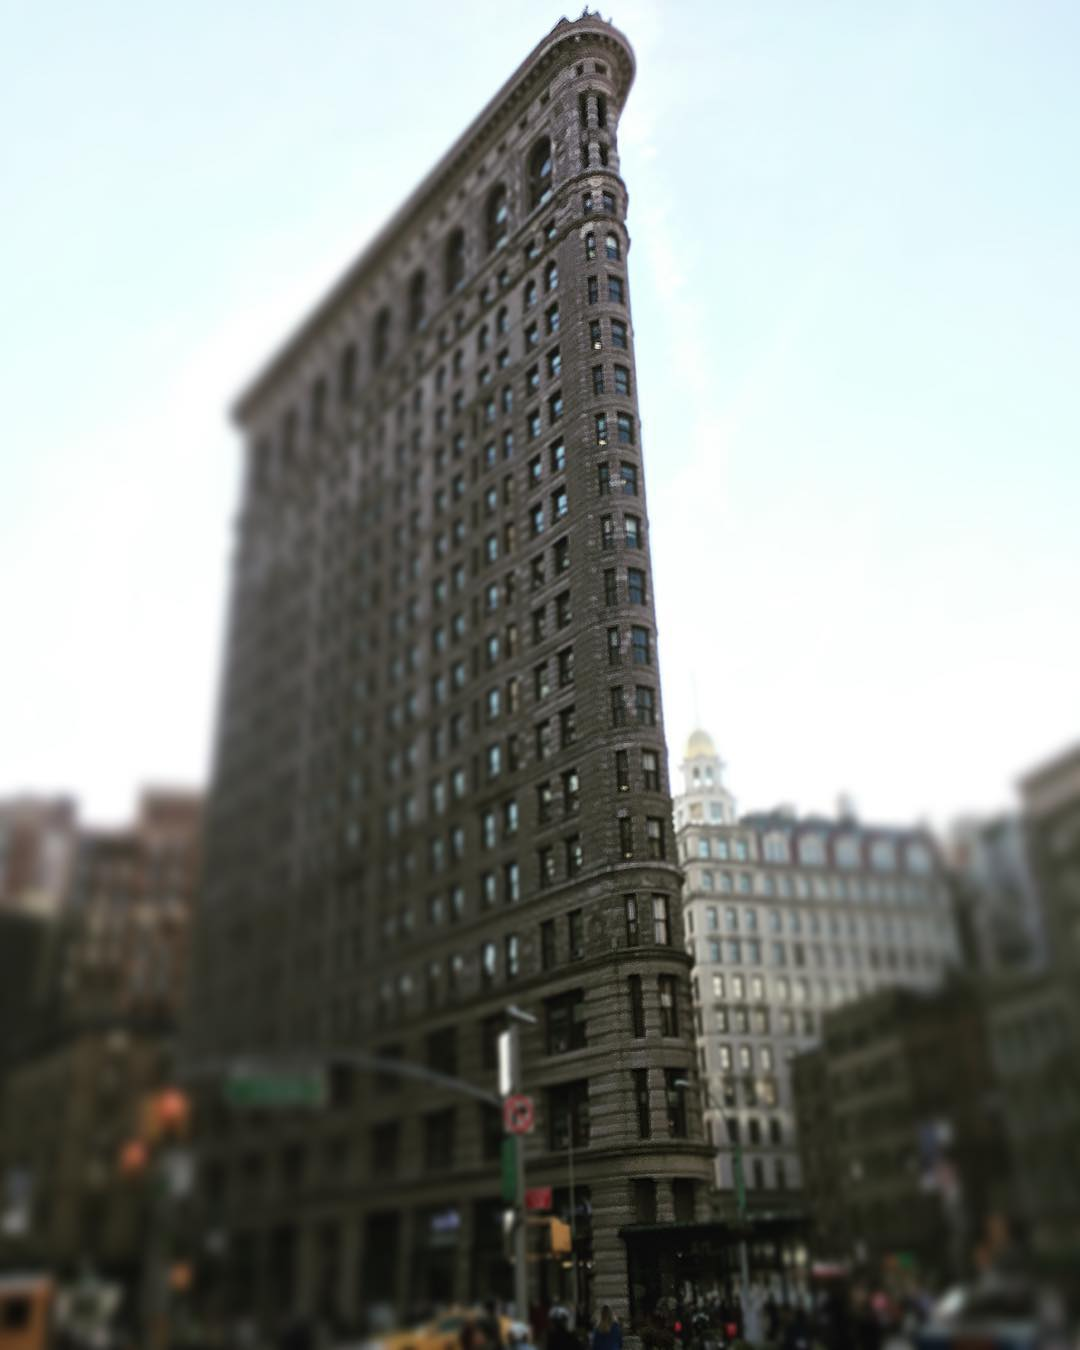 Checked in at Flatiron Building